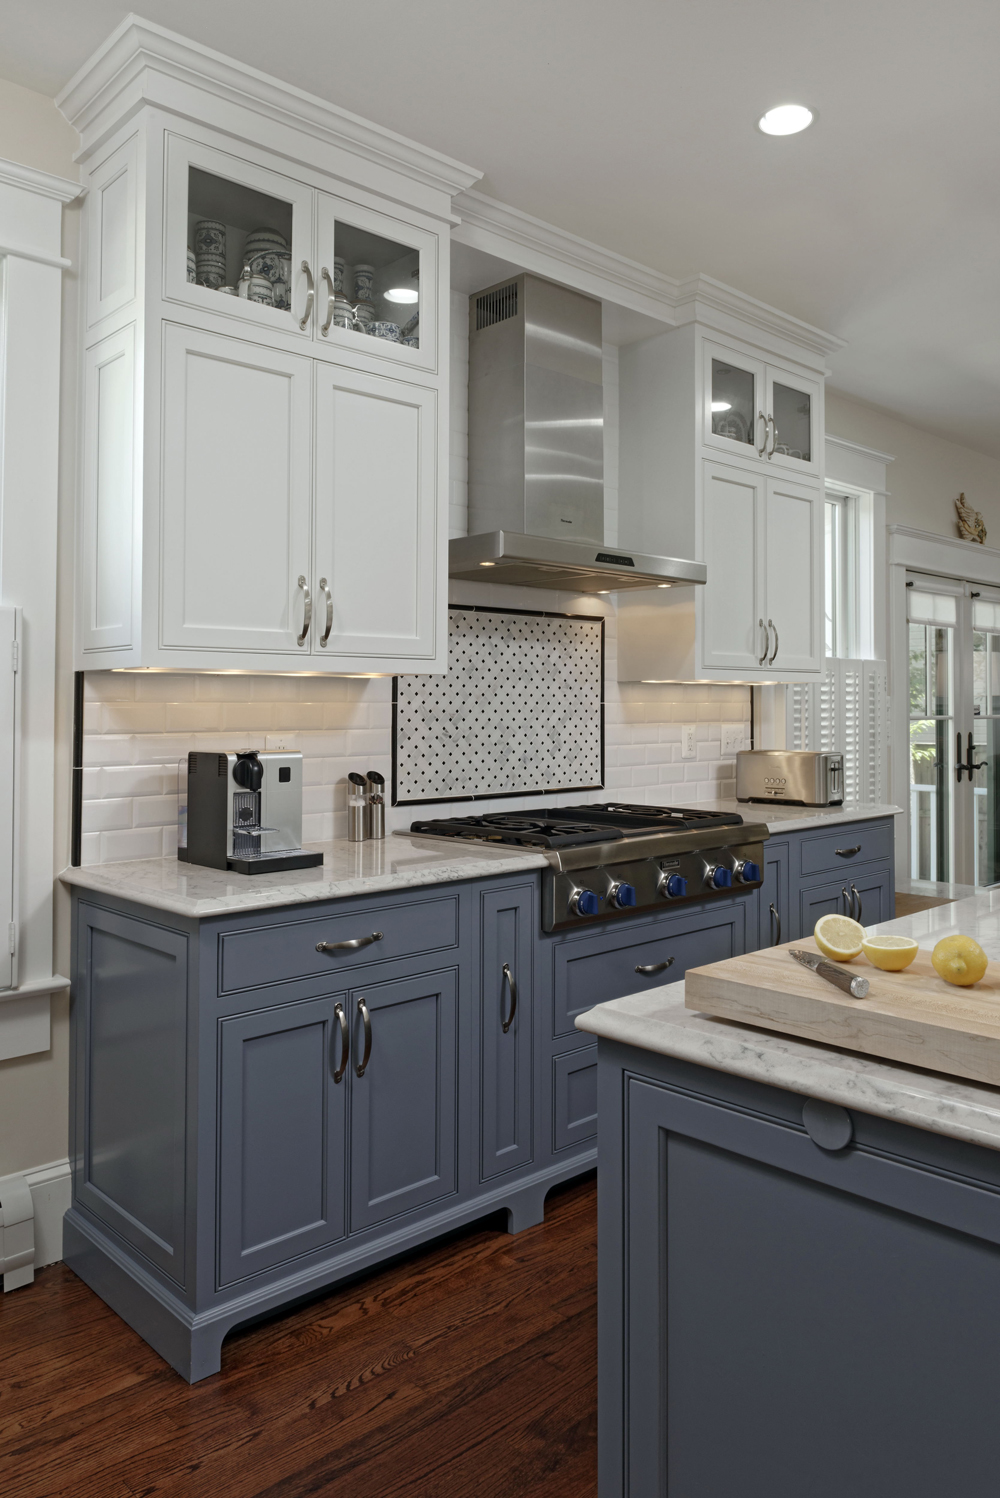 Kitchens Breakfast Amp Dining Rooms Gallery Bowa